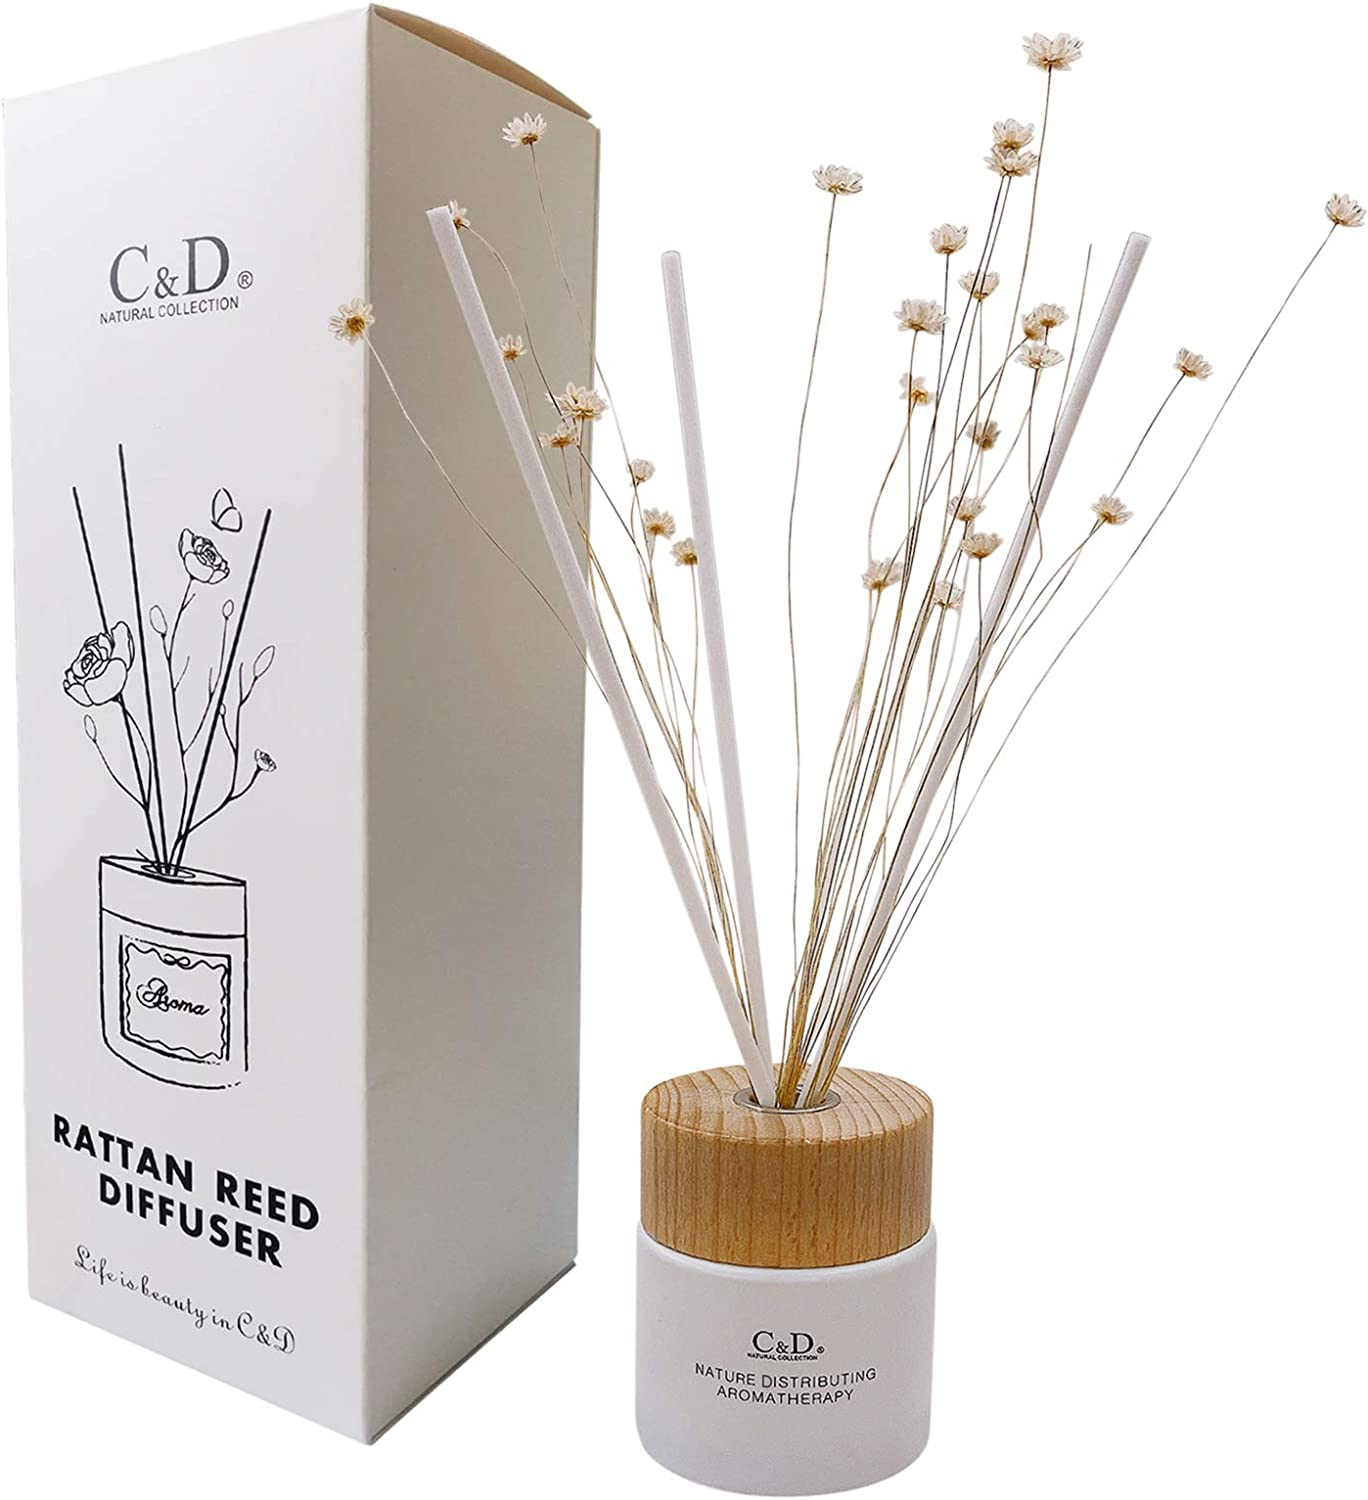 C&D Starflower Reed Diffuser Scented Reed Oil Diffuser with Rattan Sticks for Home Office Fragrance Decor Gift 50ml (English Pear & Freesia)